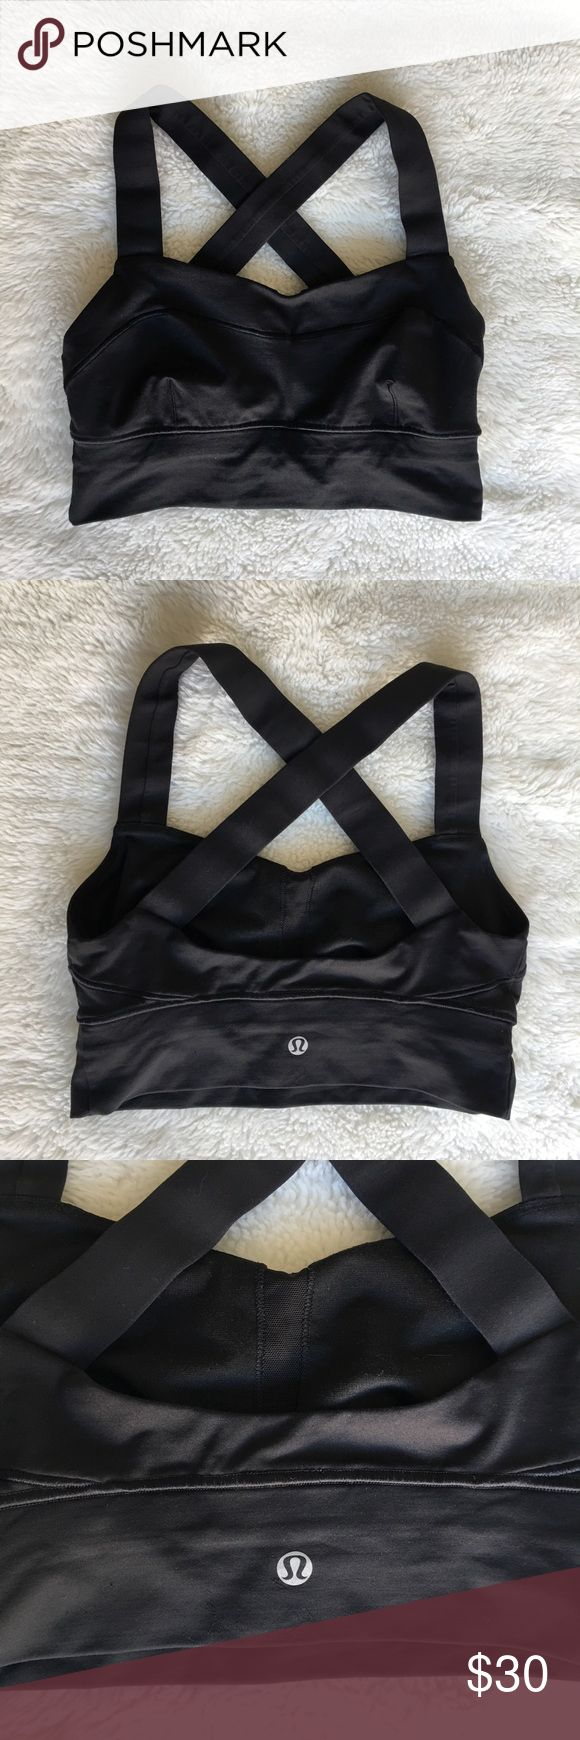 Lululemon Solid Black Sports Bra size 4 Pre-owned authentic Lululemon Solid Black Sports Bra size 4. Please look at pictures for better reference. Happy Shopping! lululemon athletica Tops